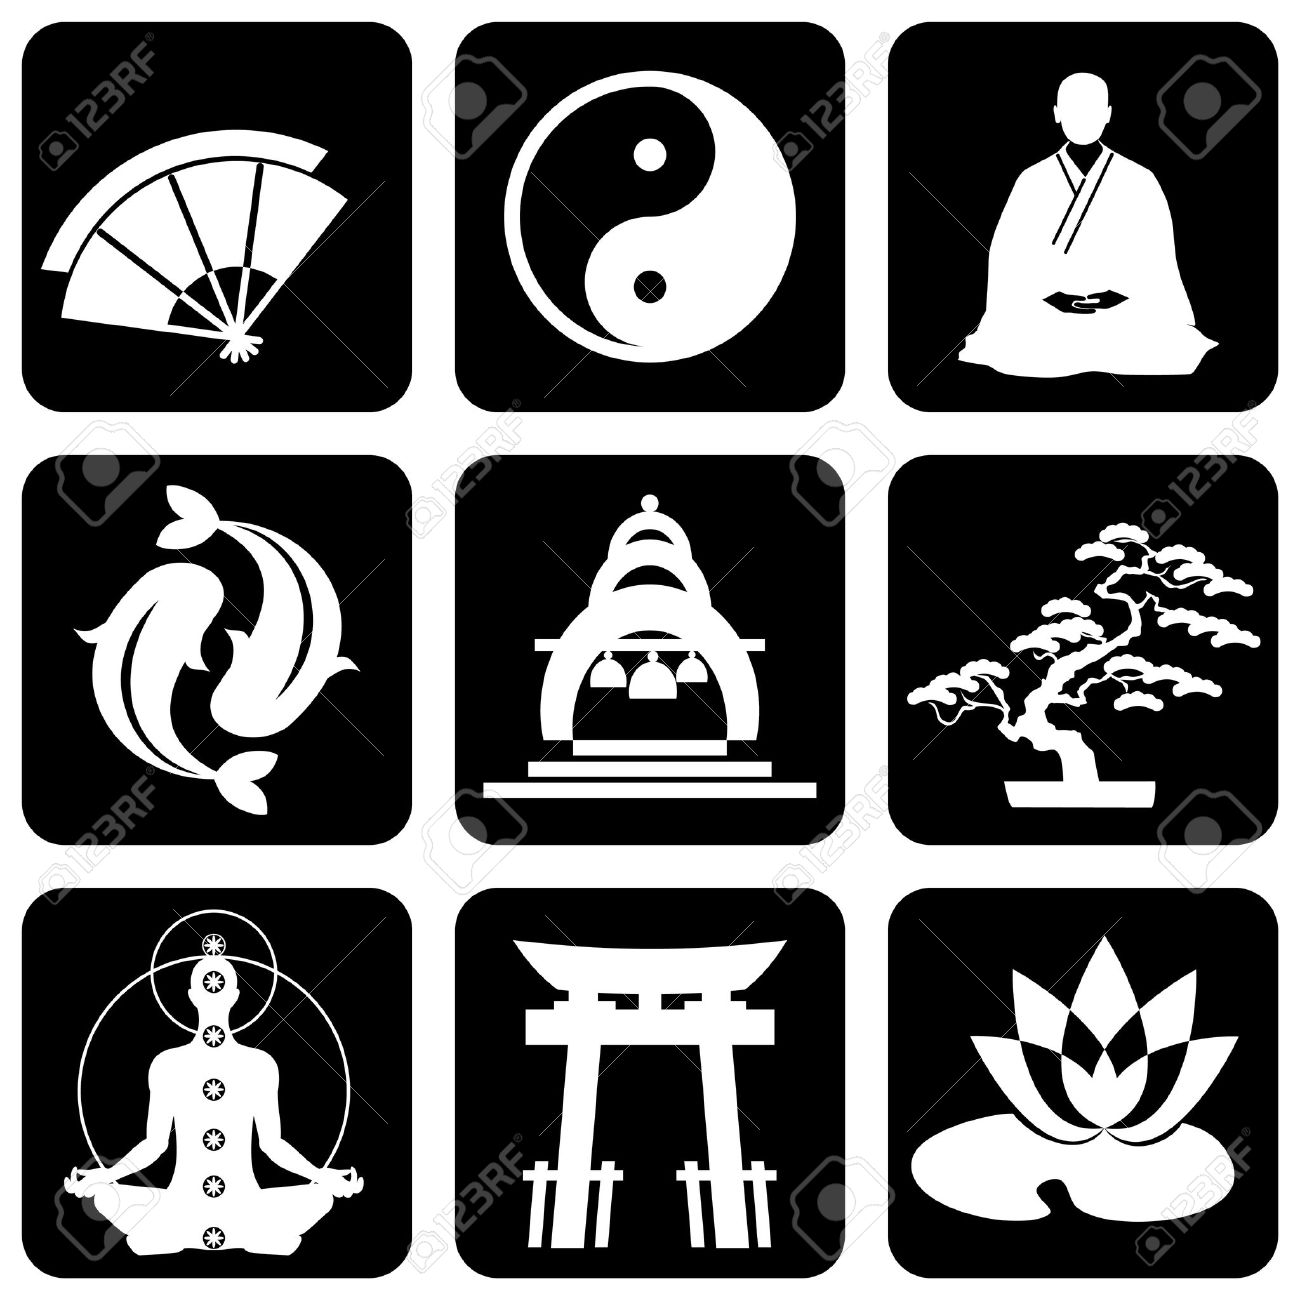 Set of icons of religious buddhism signs and symbols royalty free set of icons of religious buddhism signs and symbols stock vector 7353889 biocorpaavc